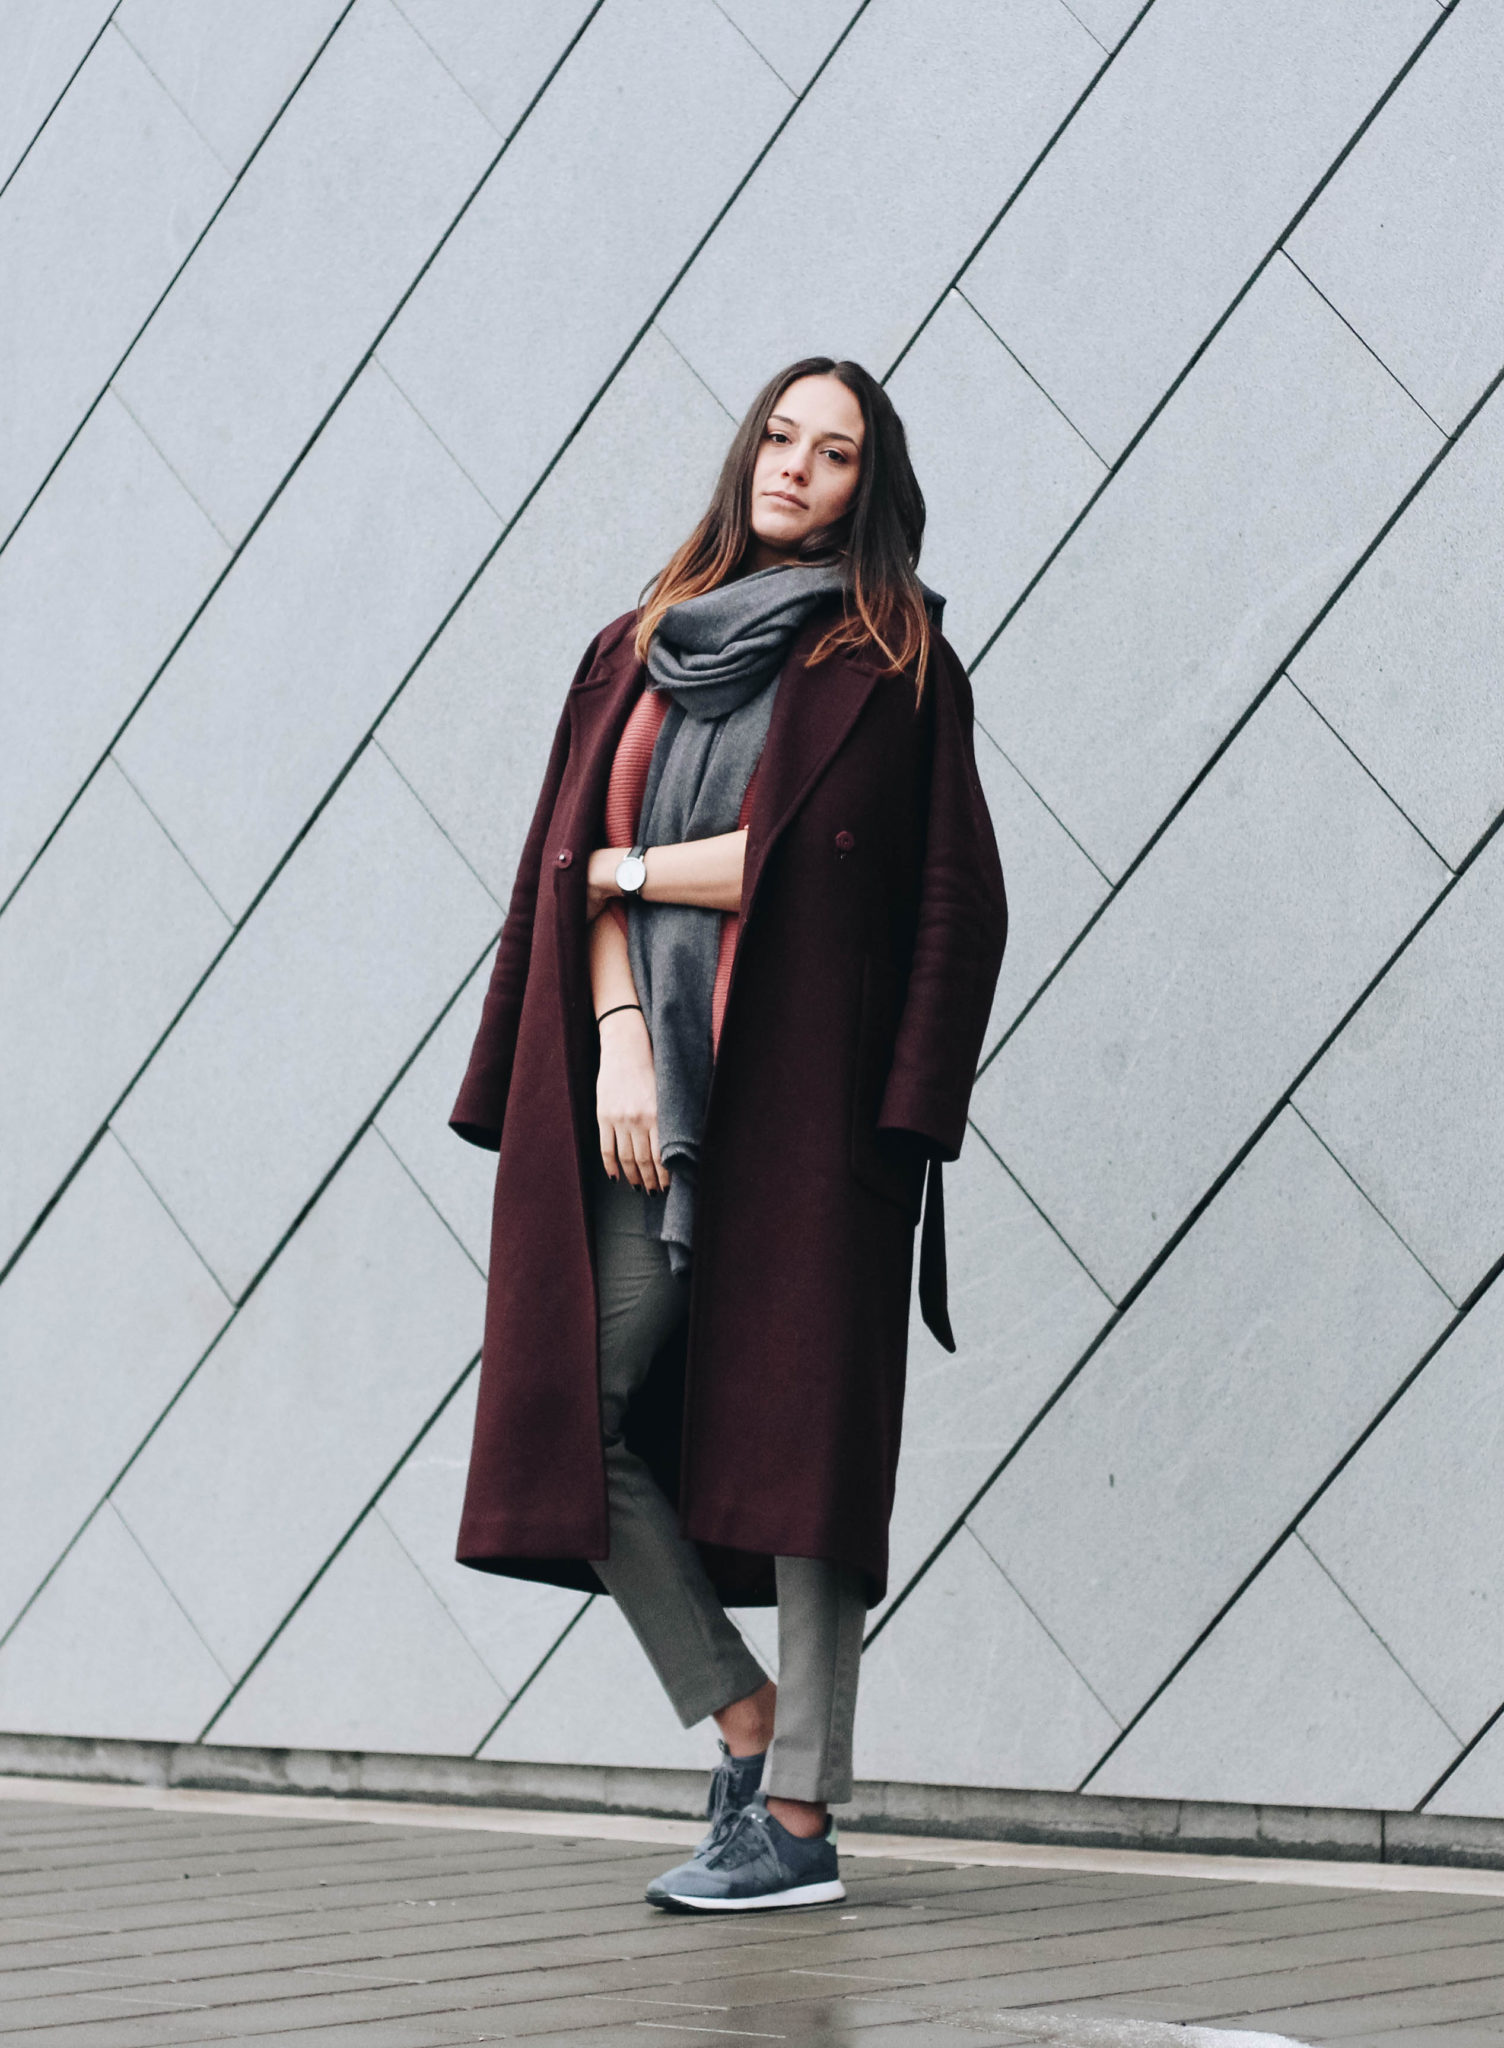 Reflections Outfit Winter Post by Michaella Bulgarian Fashion Blogger Quite a Looker, Edited coat, Cos sweater, Adidas AR-10 Grey Sneakers, Minimalist Scandinavian Fashion